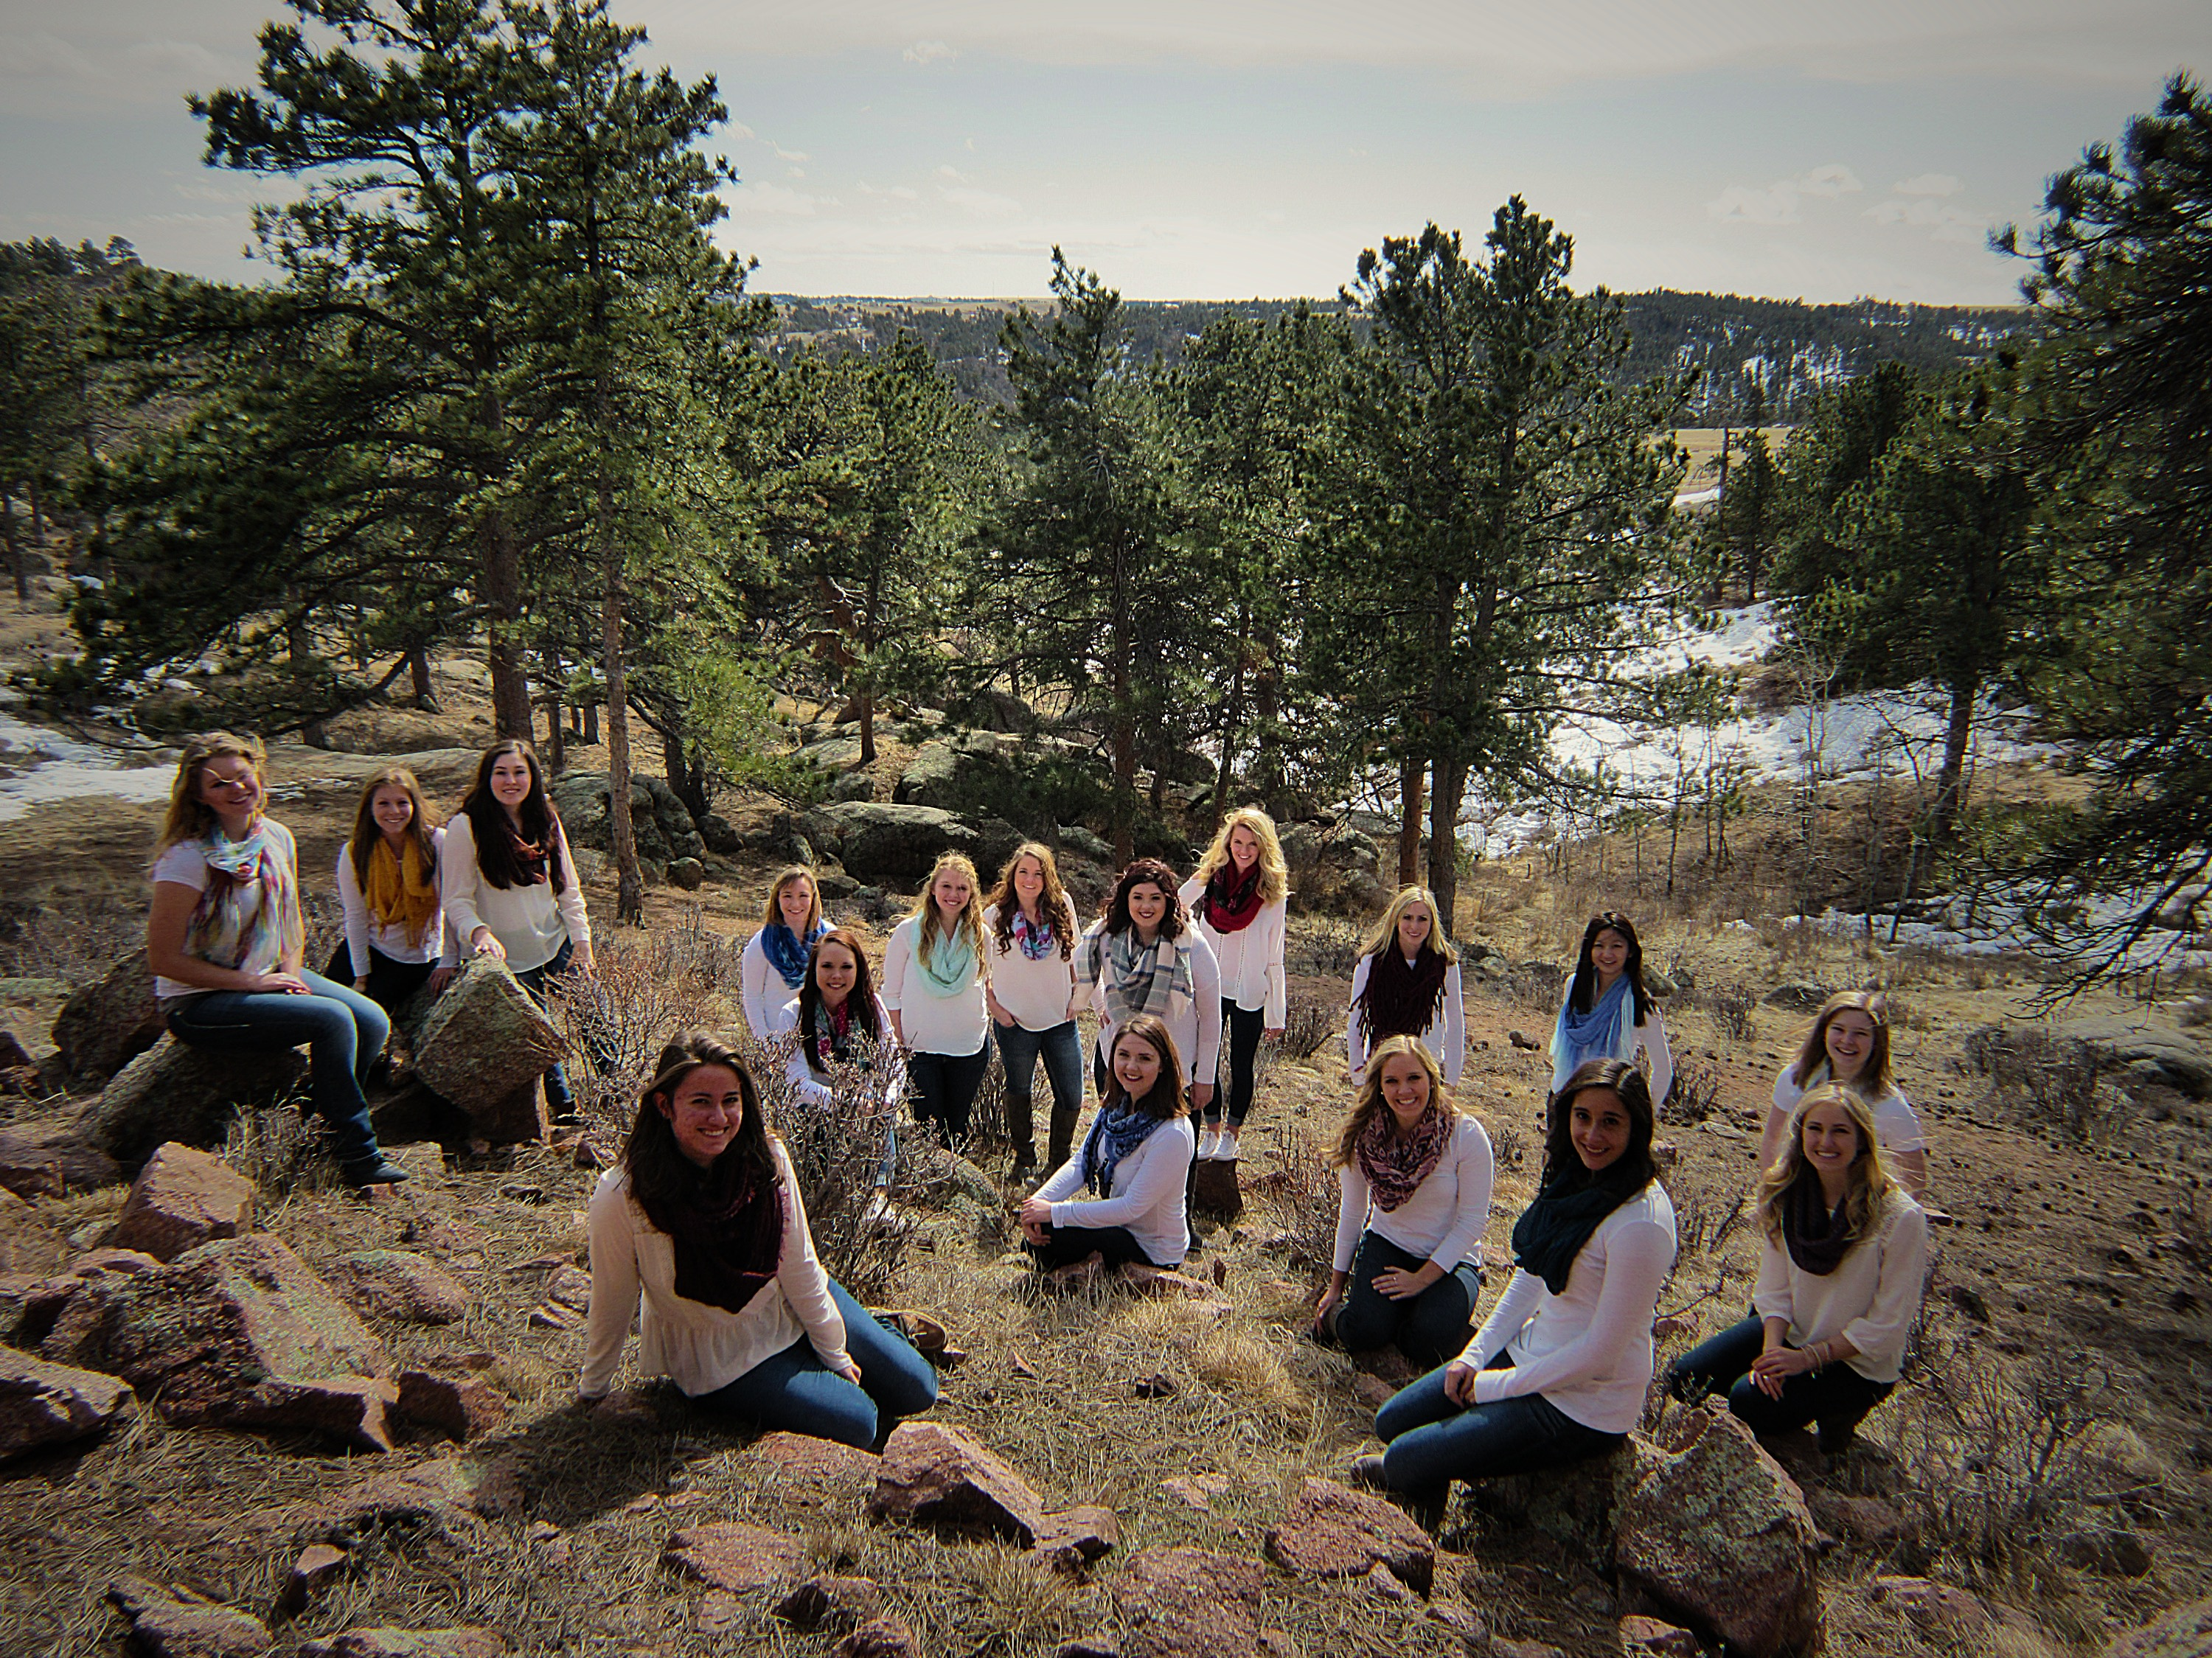 2016 Chapter Council Photoshoot